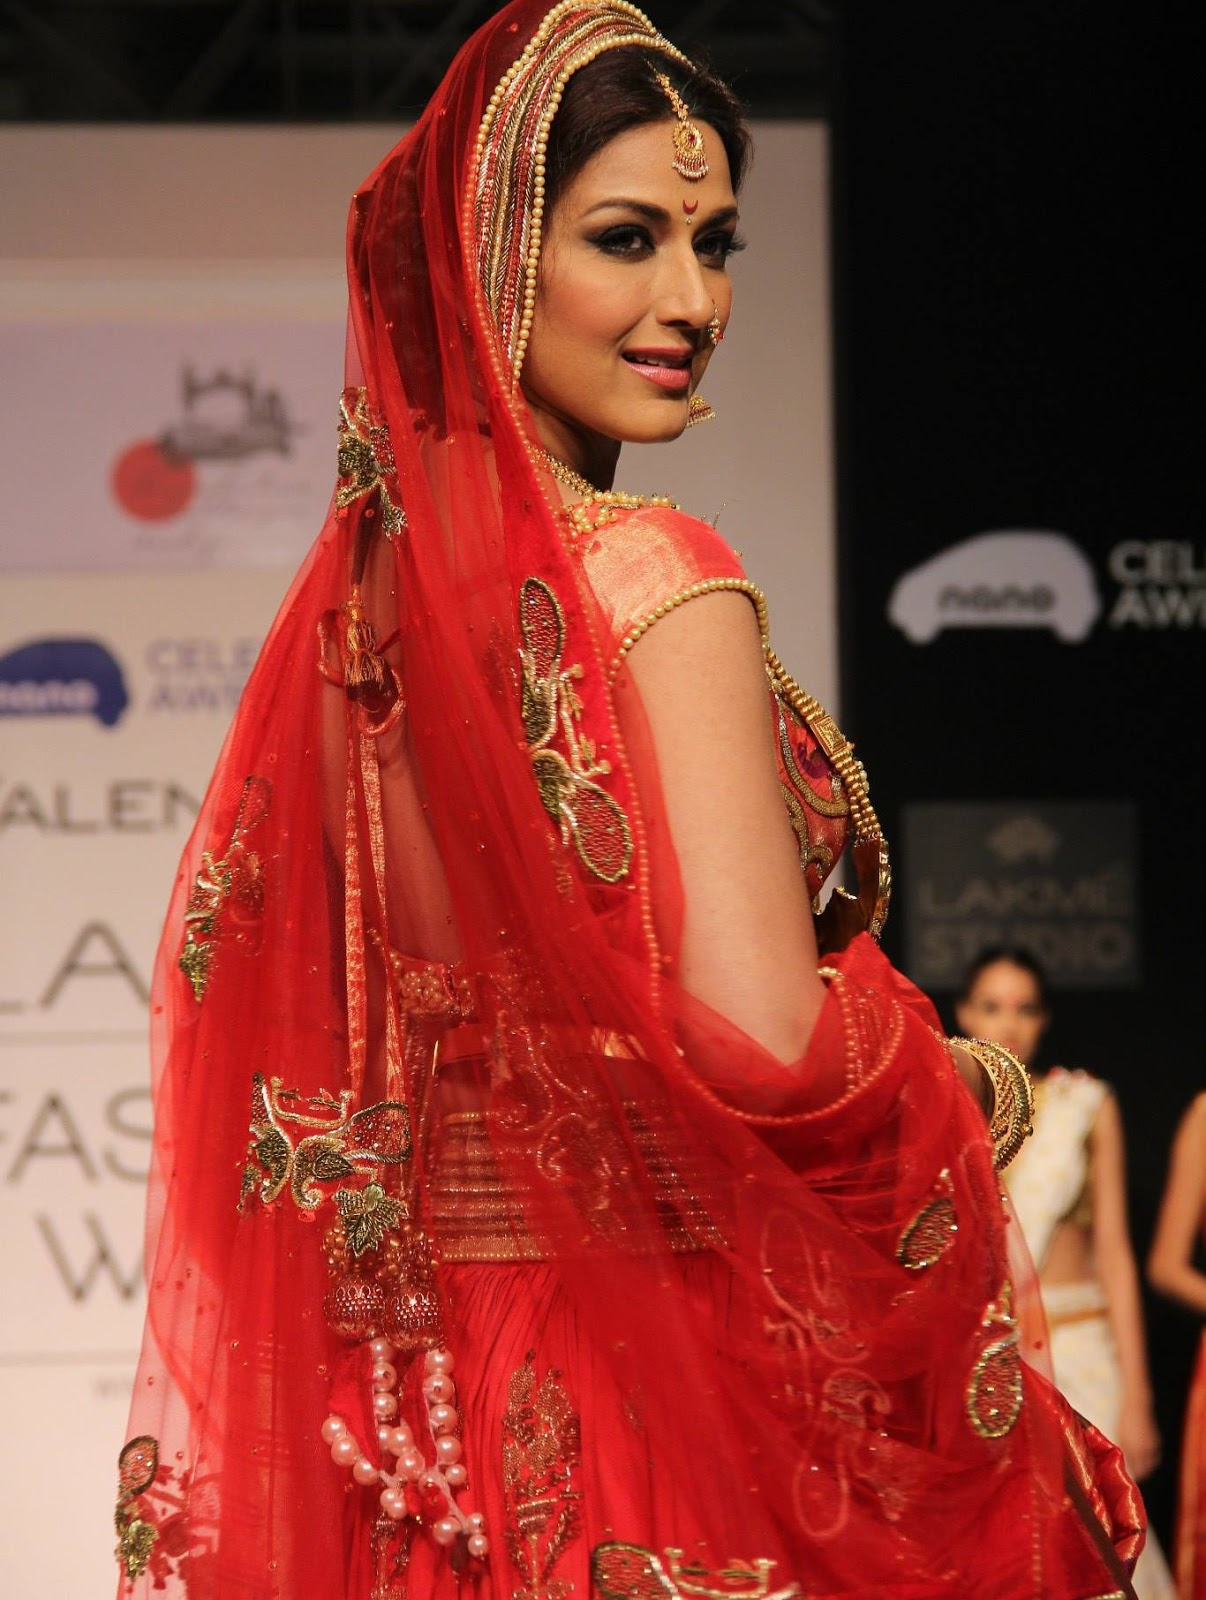 Bollywood Hot actress Sonali Bendre Hot Images